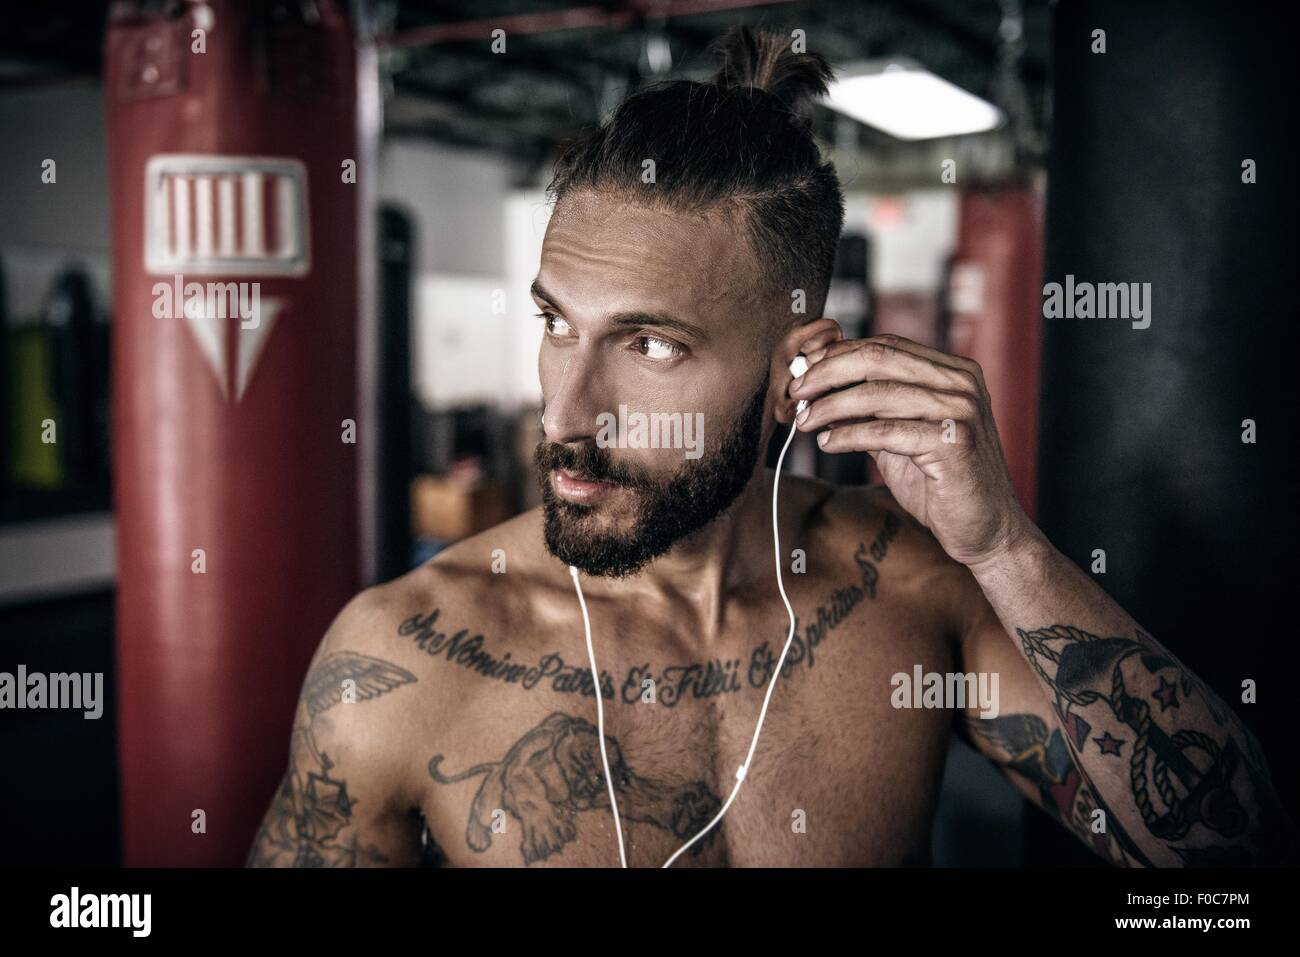 Male boxer inserting ear phones in preparation for training - Stock Image